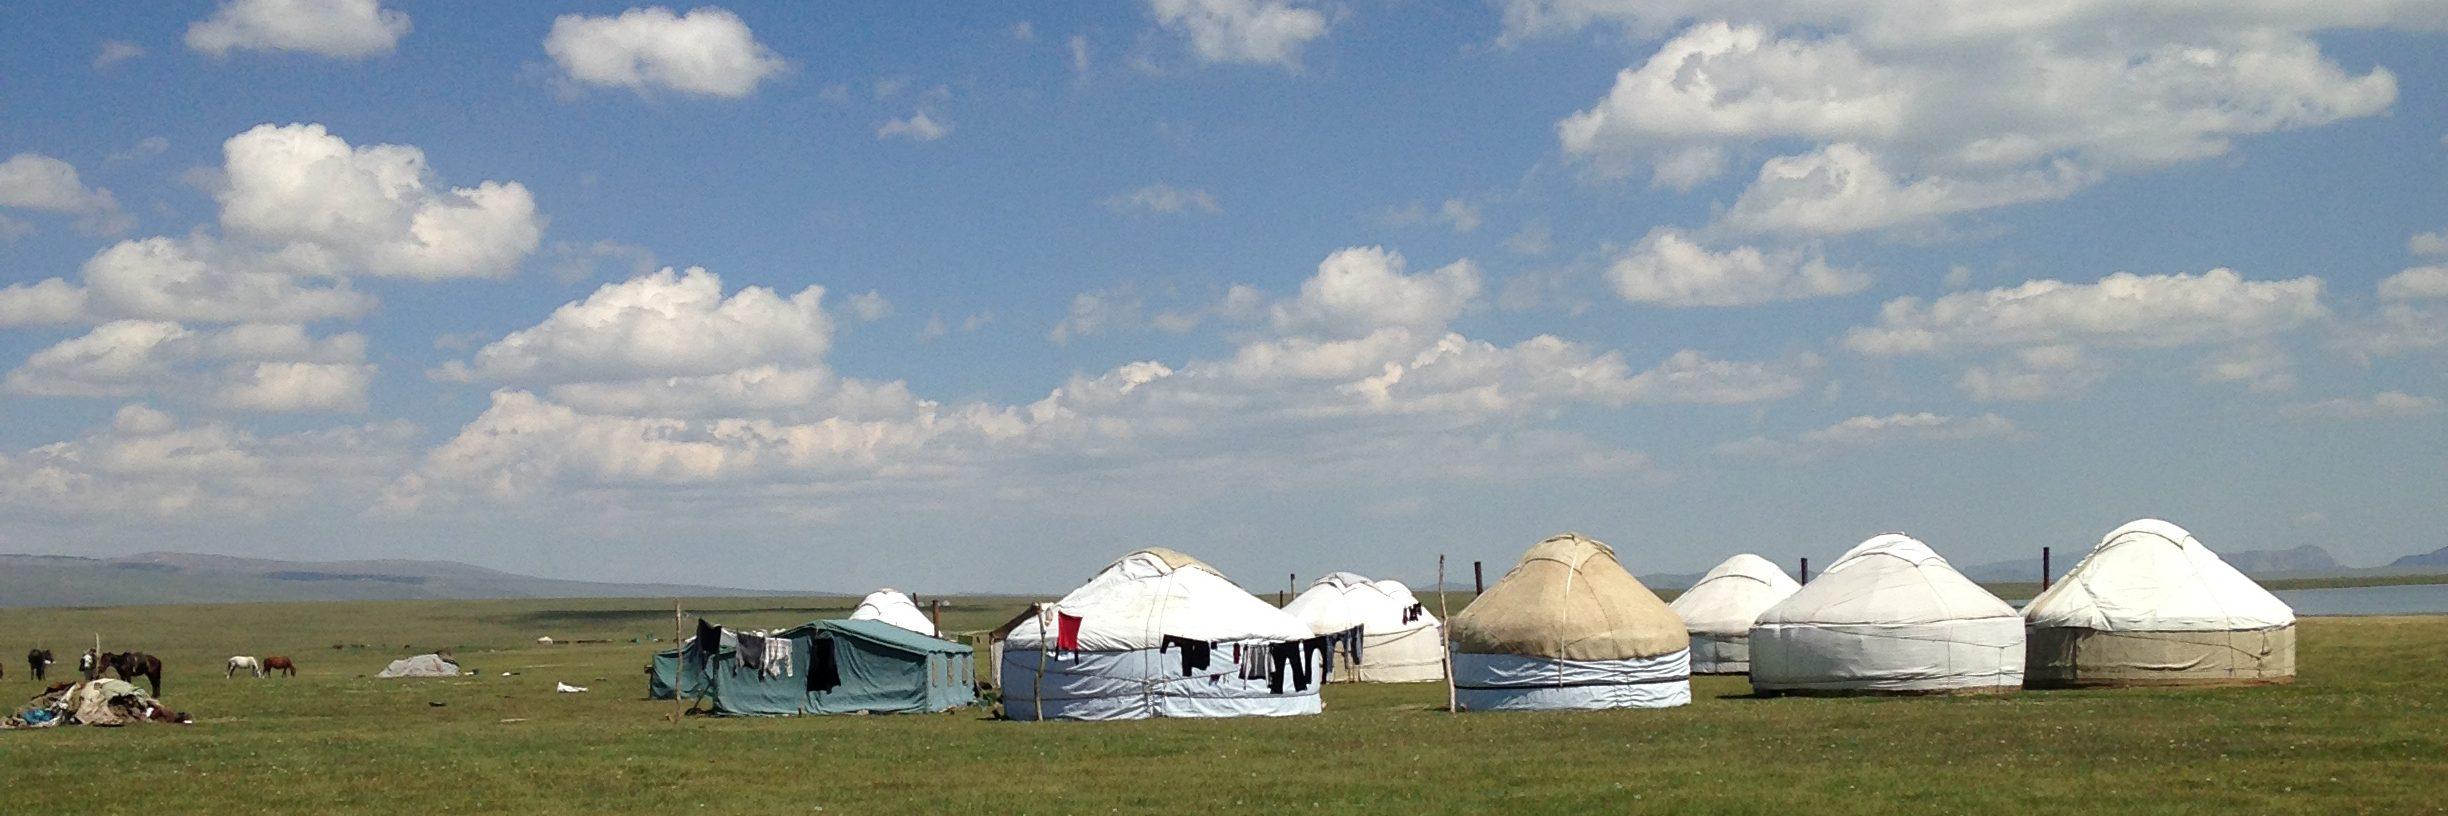 Yurts on green grass